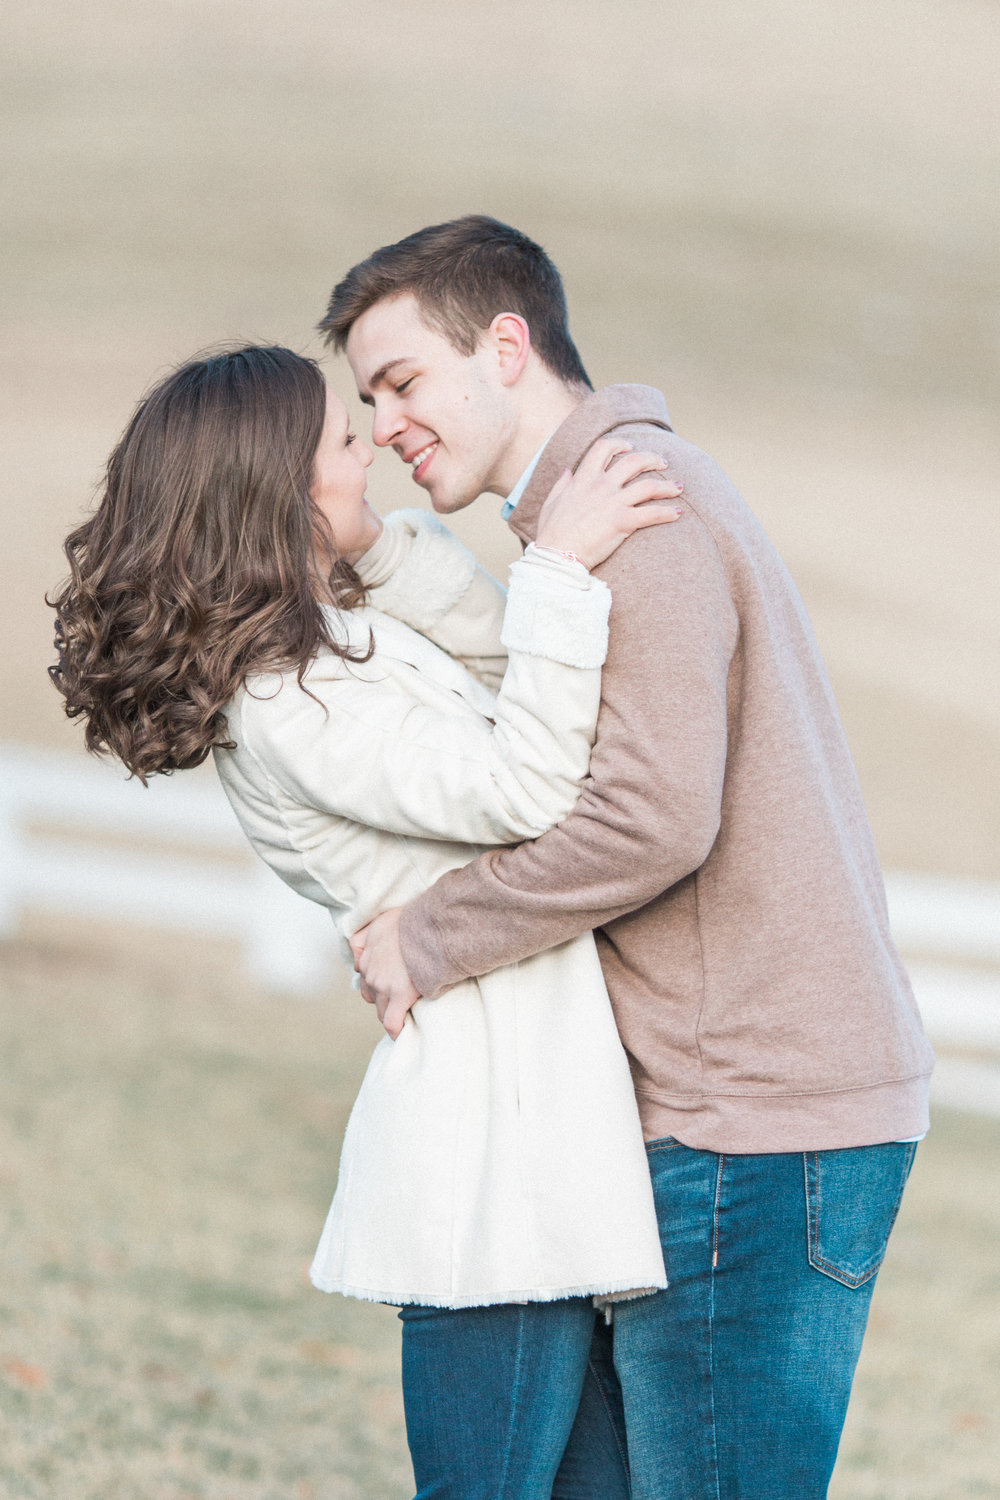 Abigail_Jill_Photography_Maryland_Engagement_Farm_Emily_Justin294.jpg